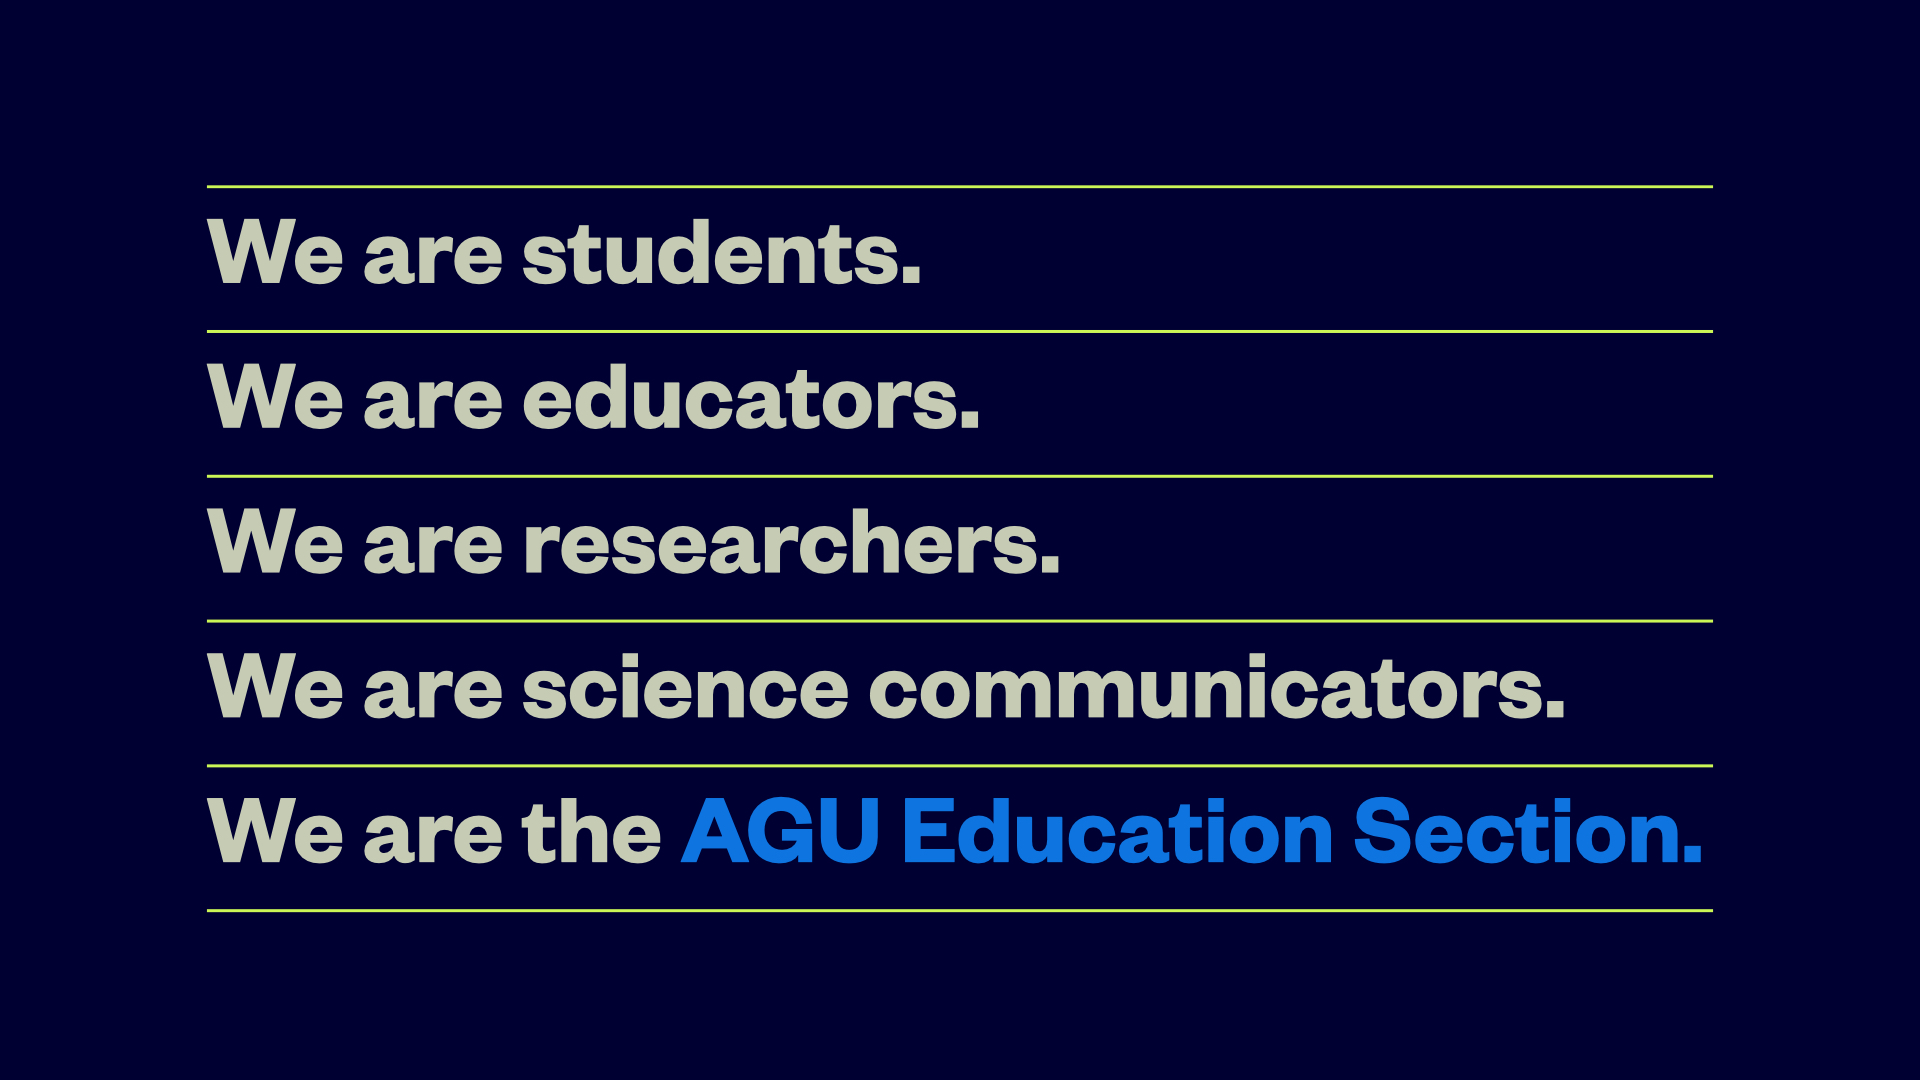 We are the AGU Education Section.